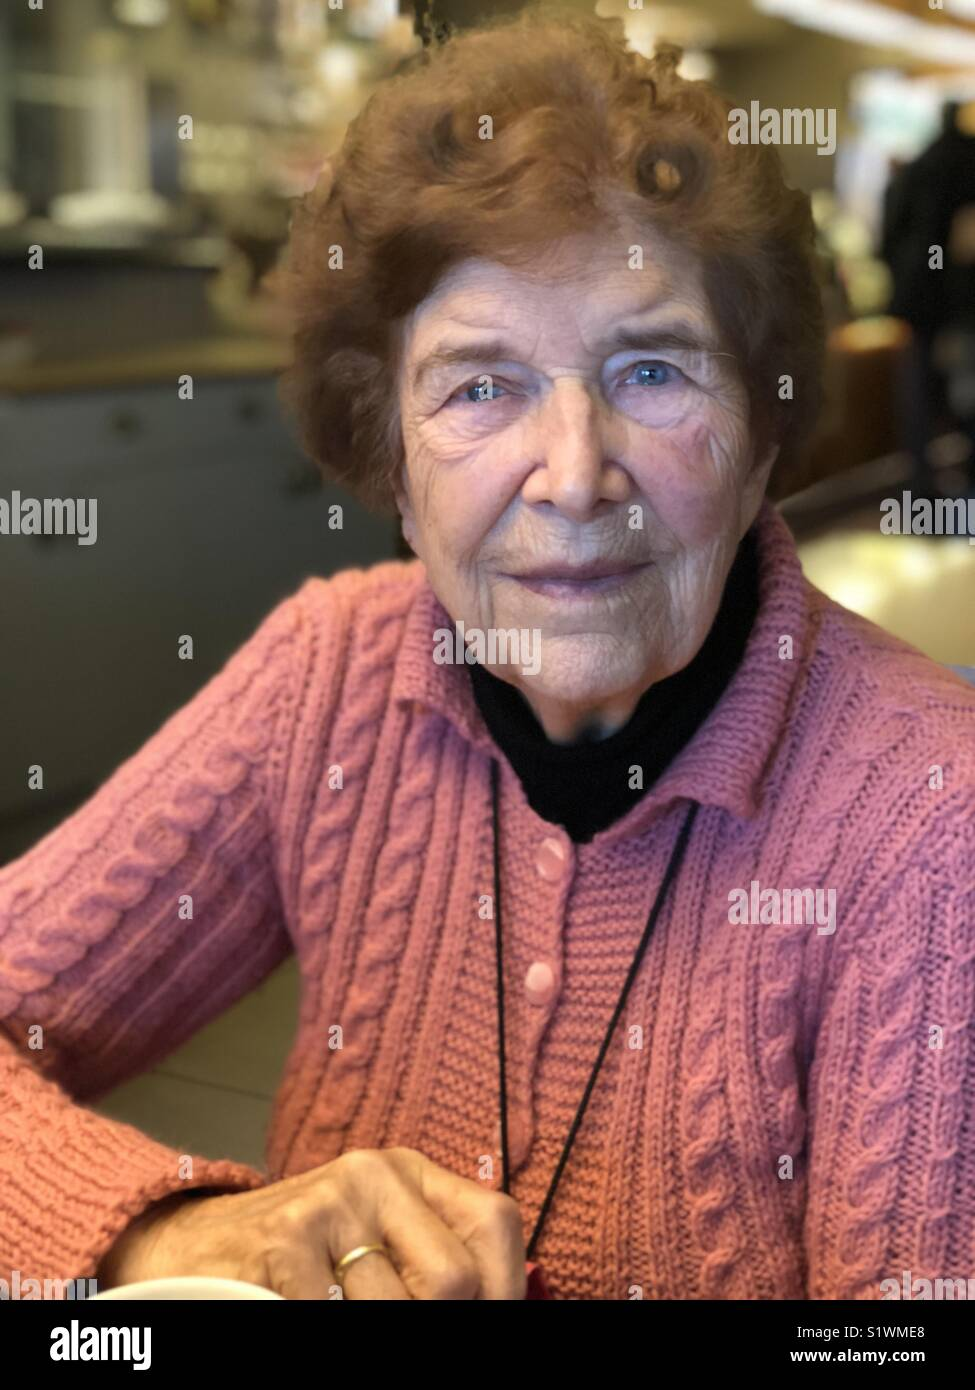 Old german woman portrait - Stock Image